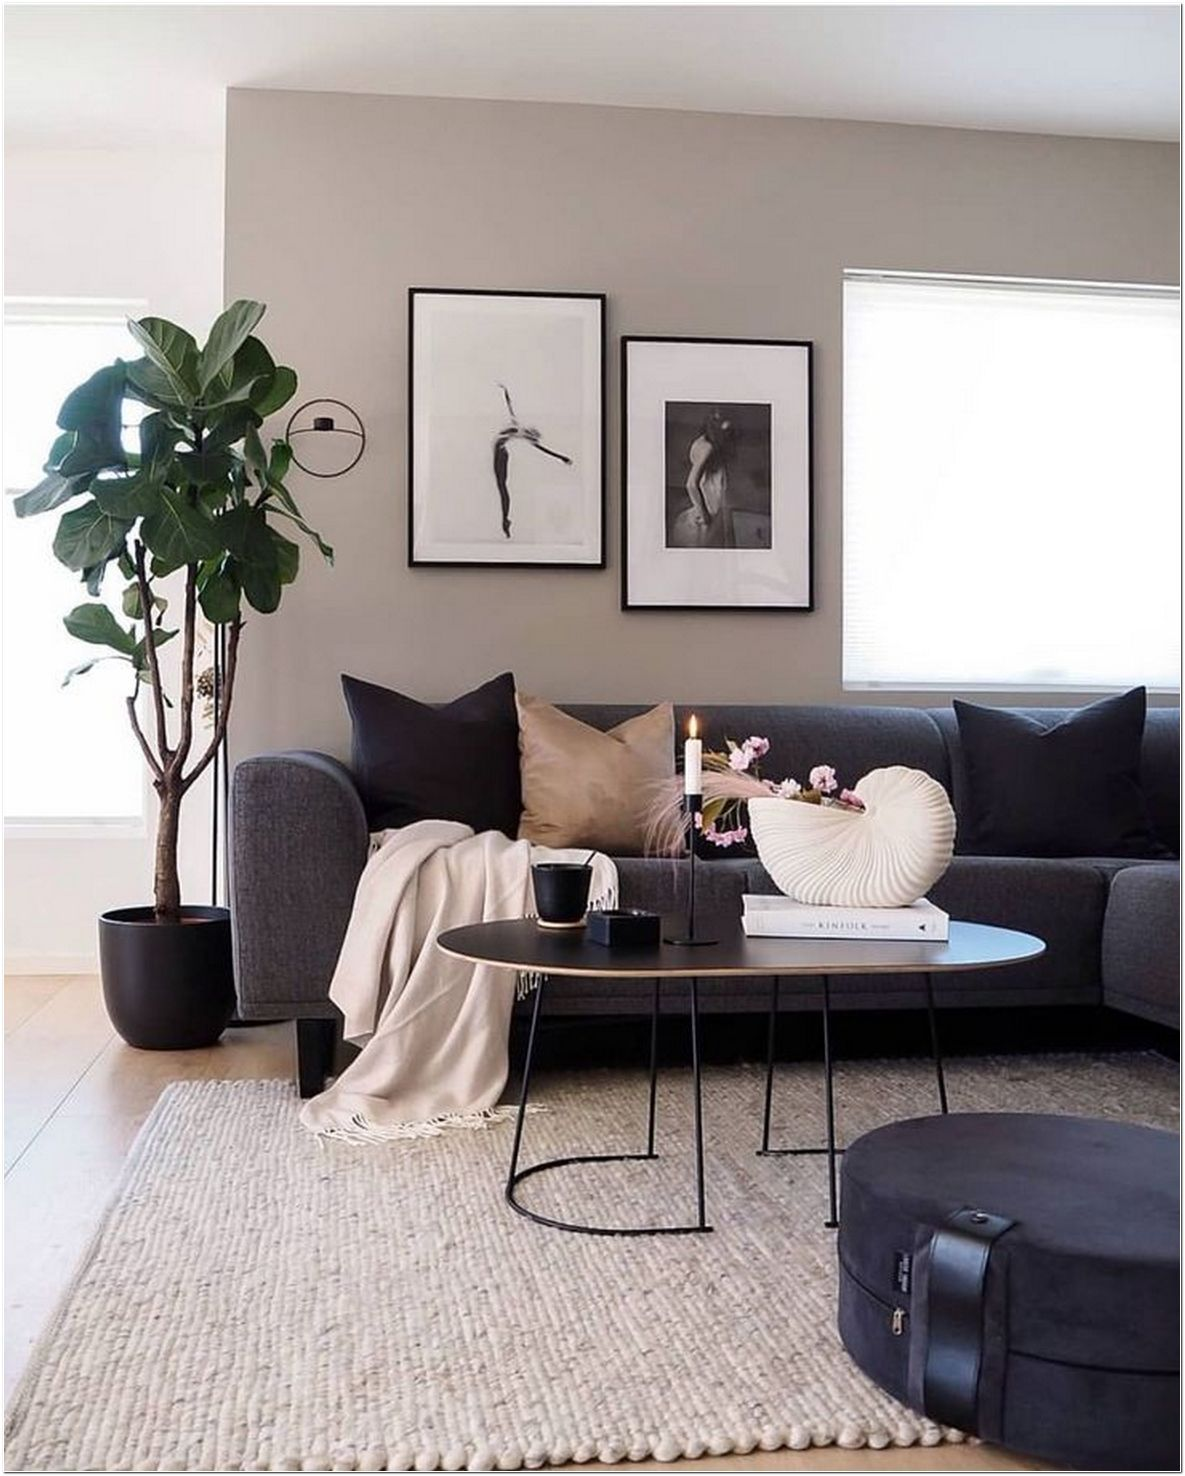 Pin By Martina On Home Decor Home Living Room Living Room Decor Modern Small Living Room Decor